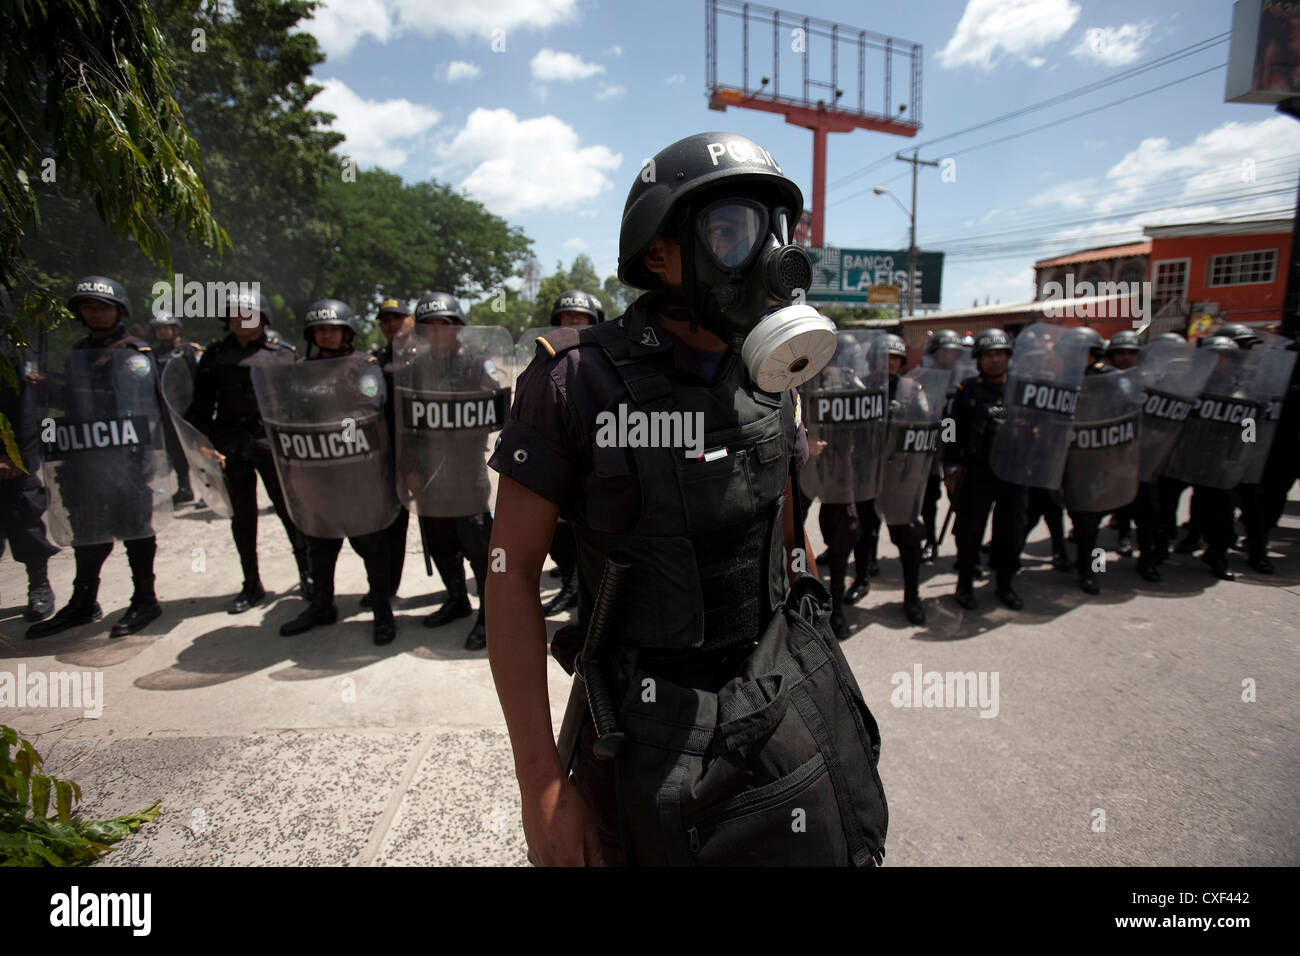 Honduran Police stand guard as thousands of supporters of Honduras' ousted President Manuel Zelaya protest in Tegucigalpa Stock Photo